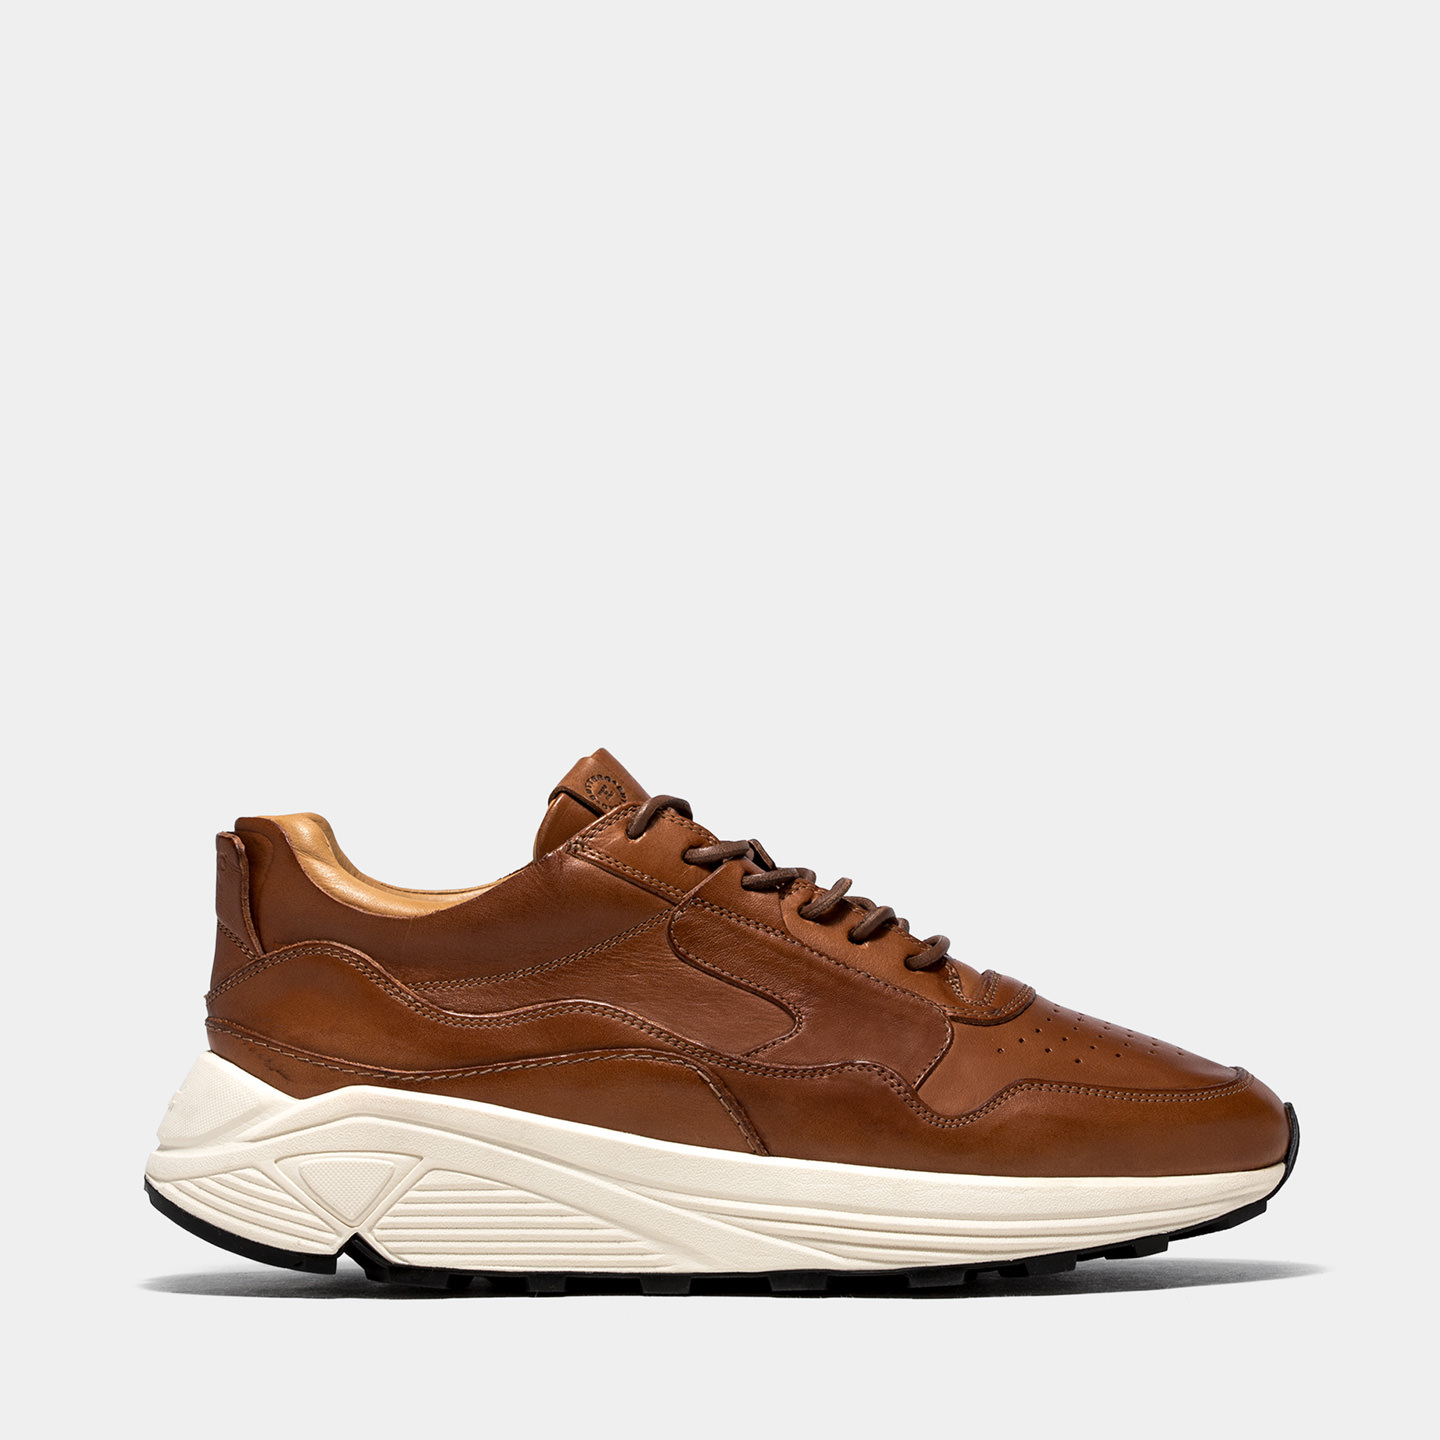 BUTTERO: VINCI RUNNING IN NATURAL BROWN CALF LEATHER